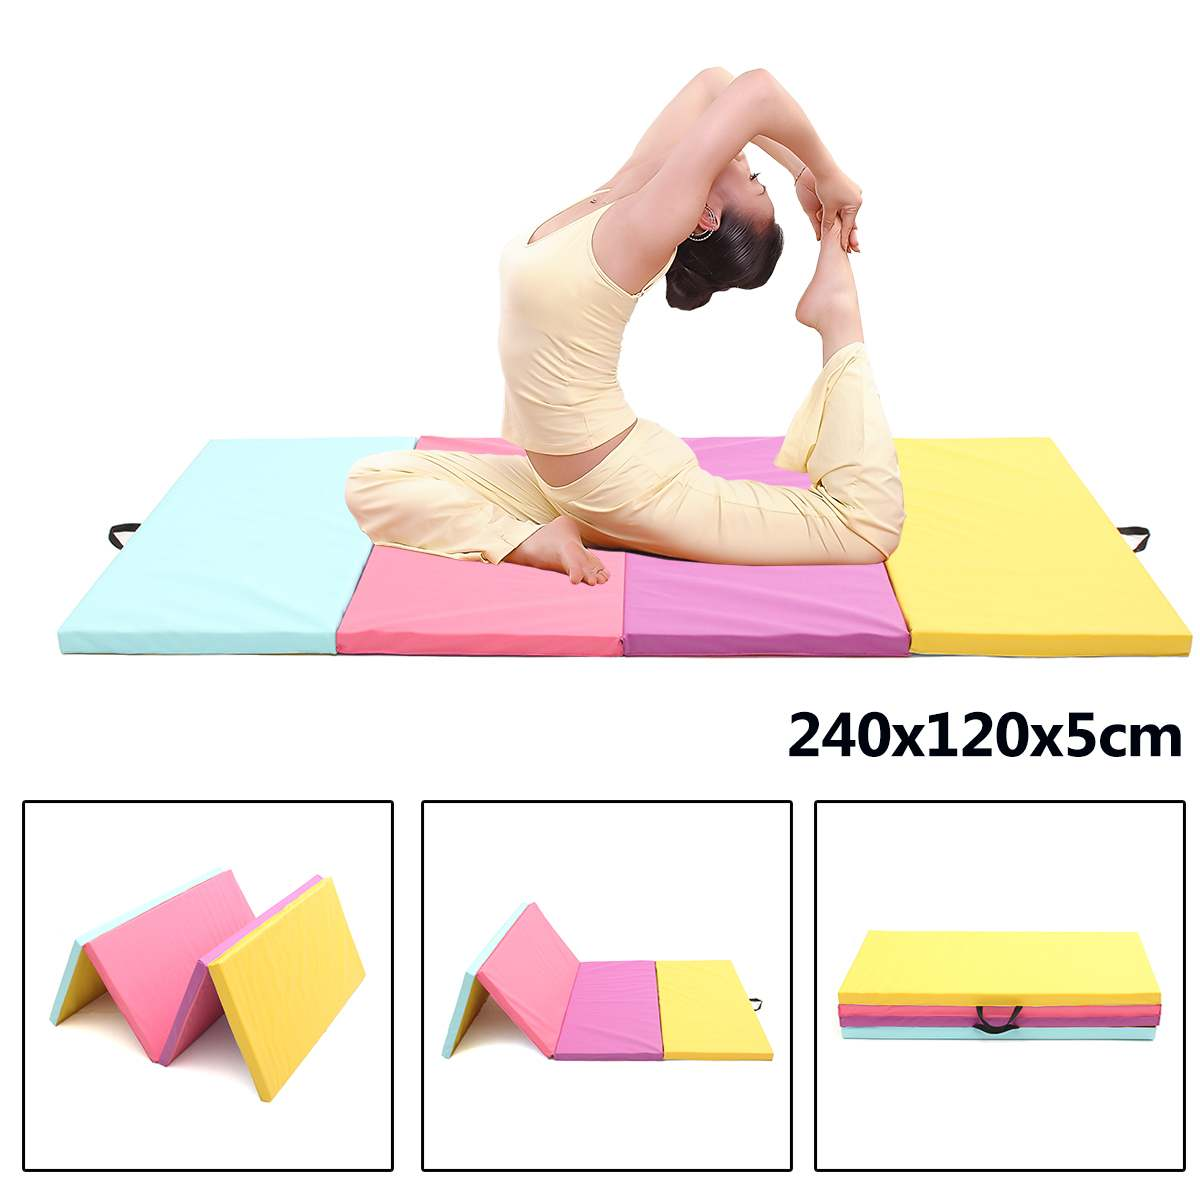 Fitness & Body Building Humor Foldable Gymnastics Mats Indoor Sports Folding Fitness Gym Exercise Yoga Mat Pad Outdoor Training Body Building Mattress Attractive Fashion Sports & Entertainment